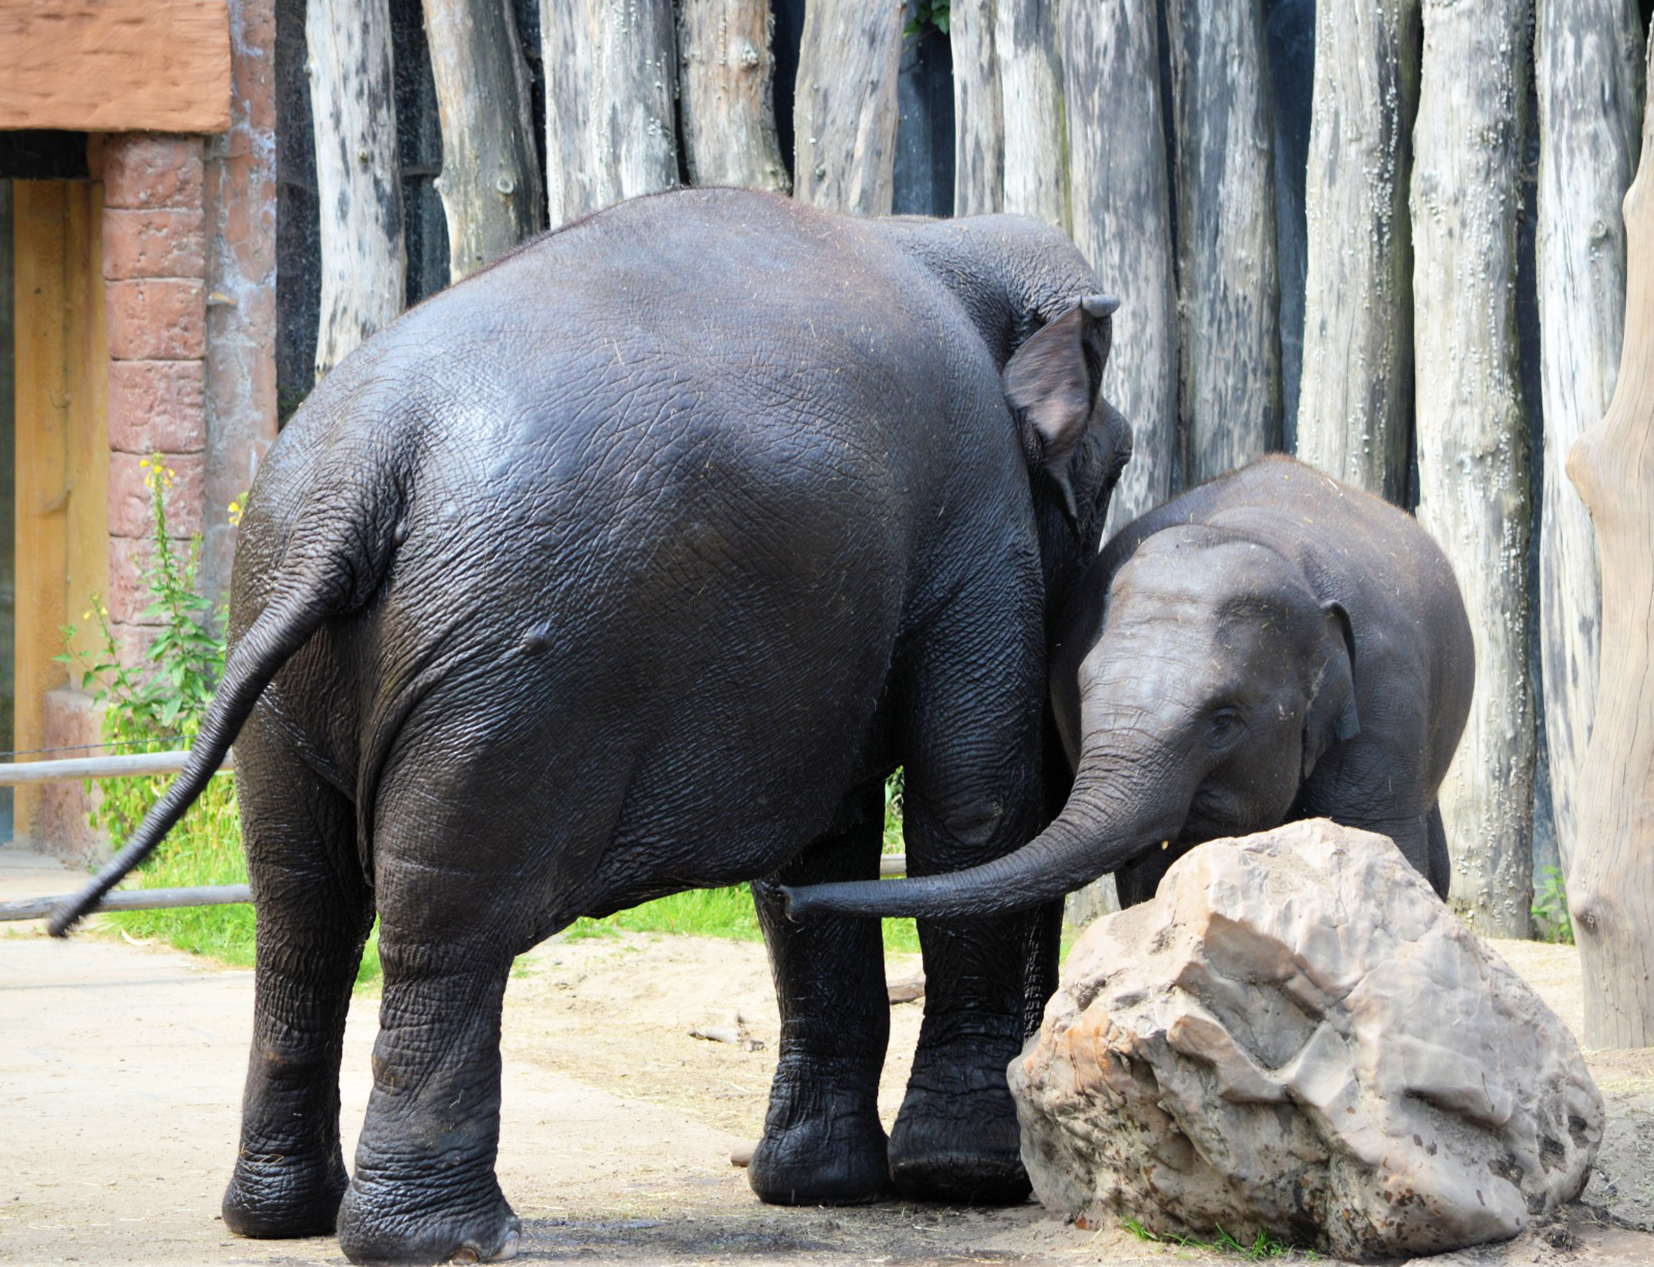 mother and baby elephant in zoo